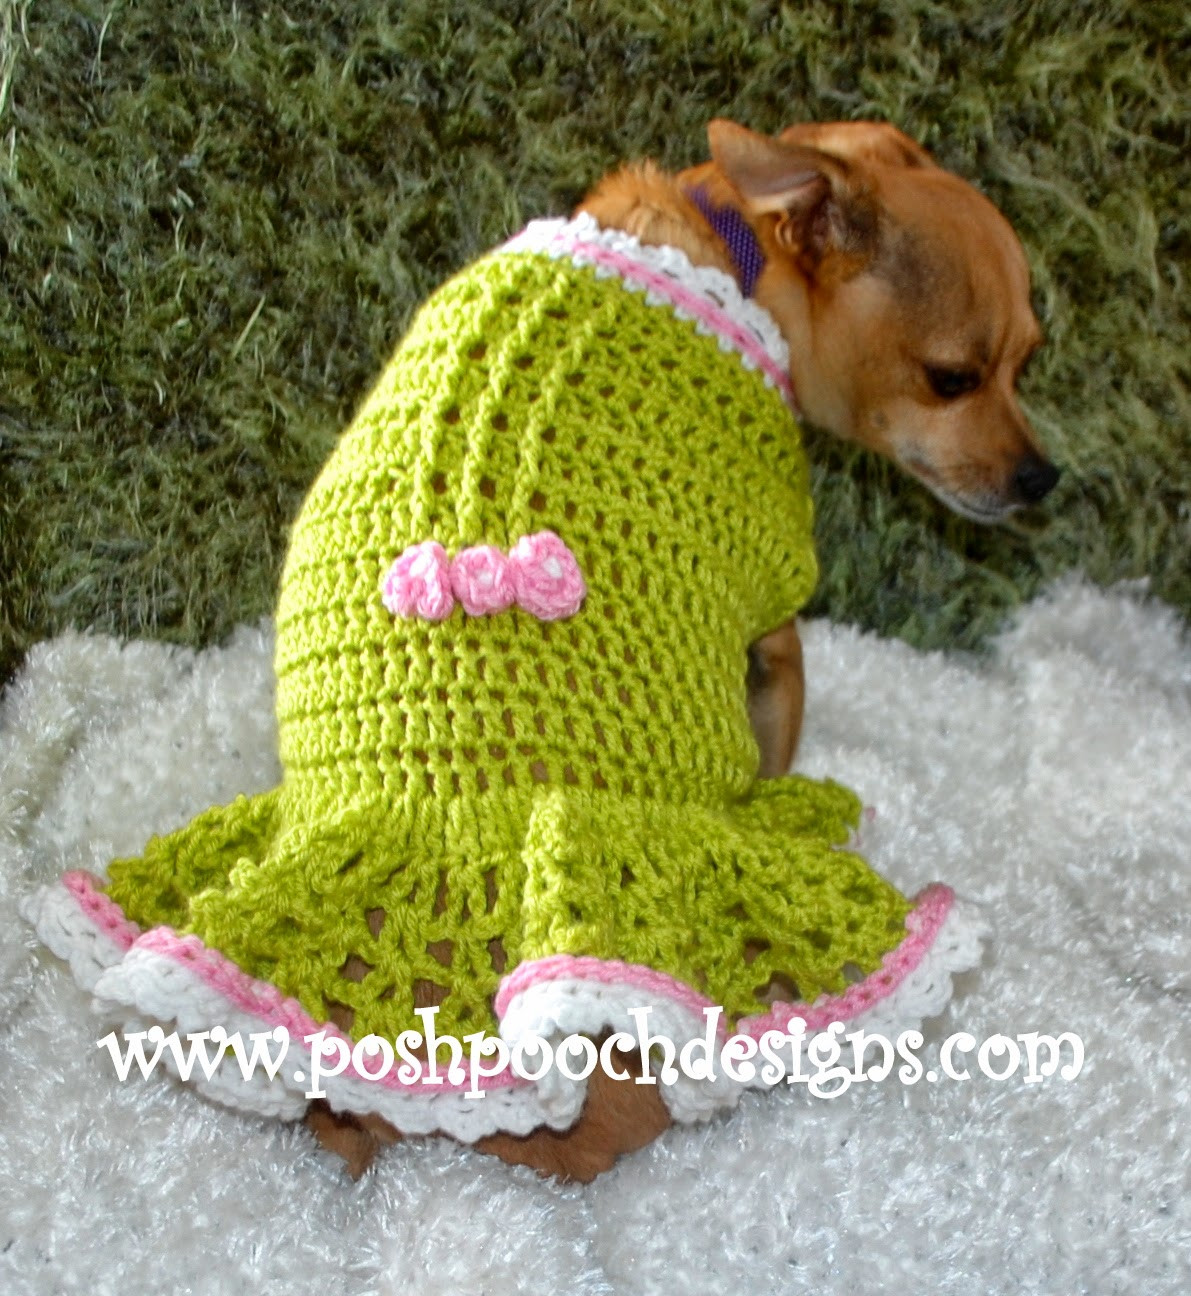 Crochet Dog Sweater Fresh Posh Pooch Designs Dog Clothes New Release Amber Spring Of New 46 Photos Crochet Dog Sweater